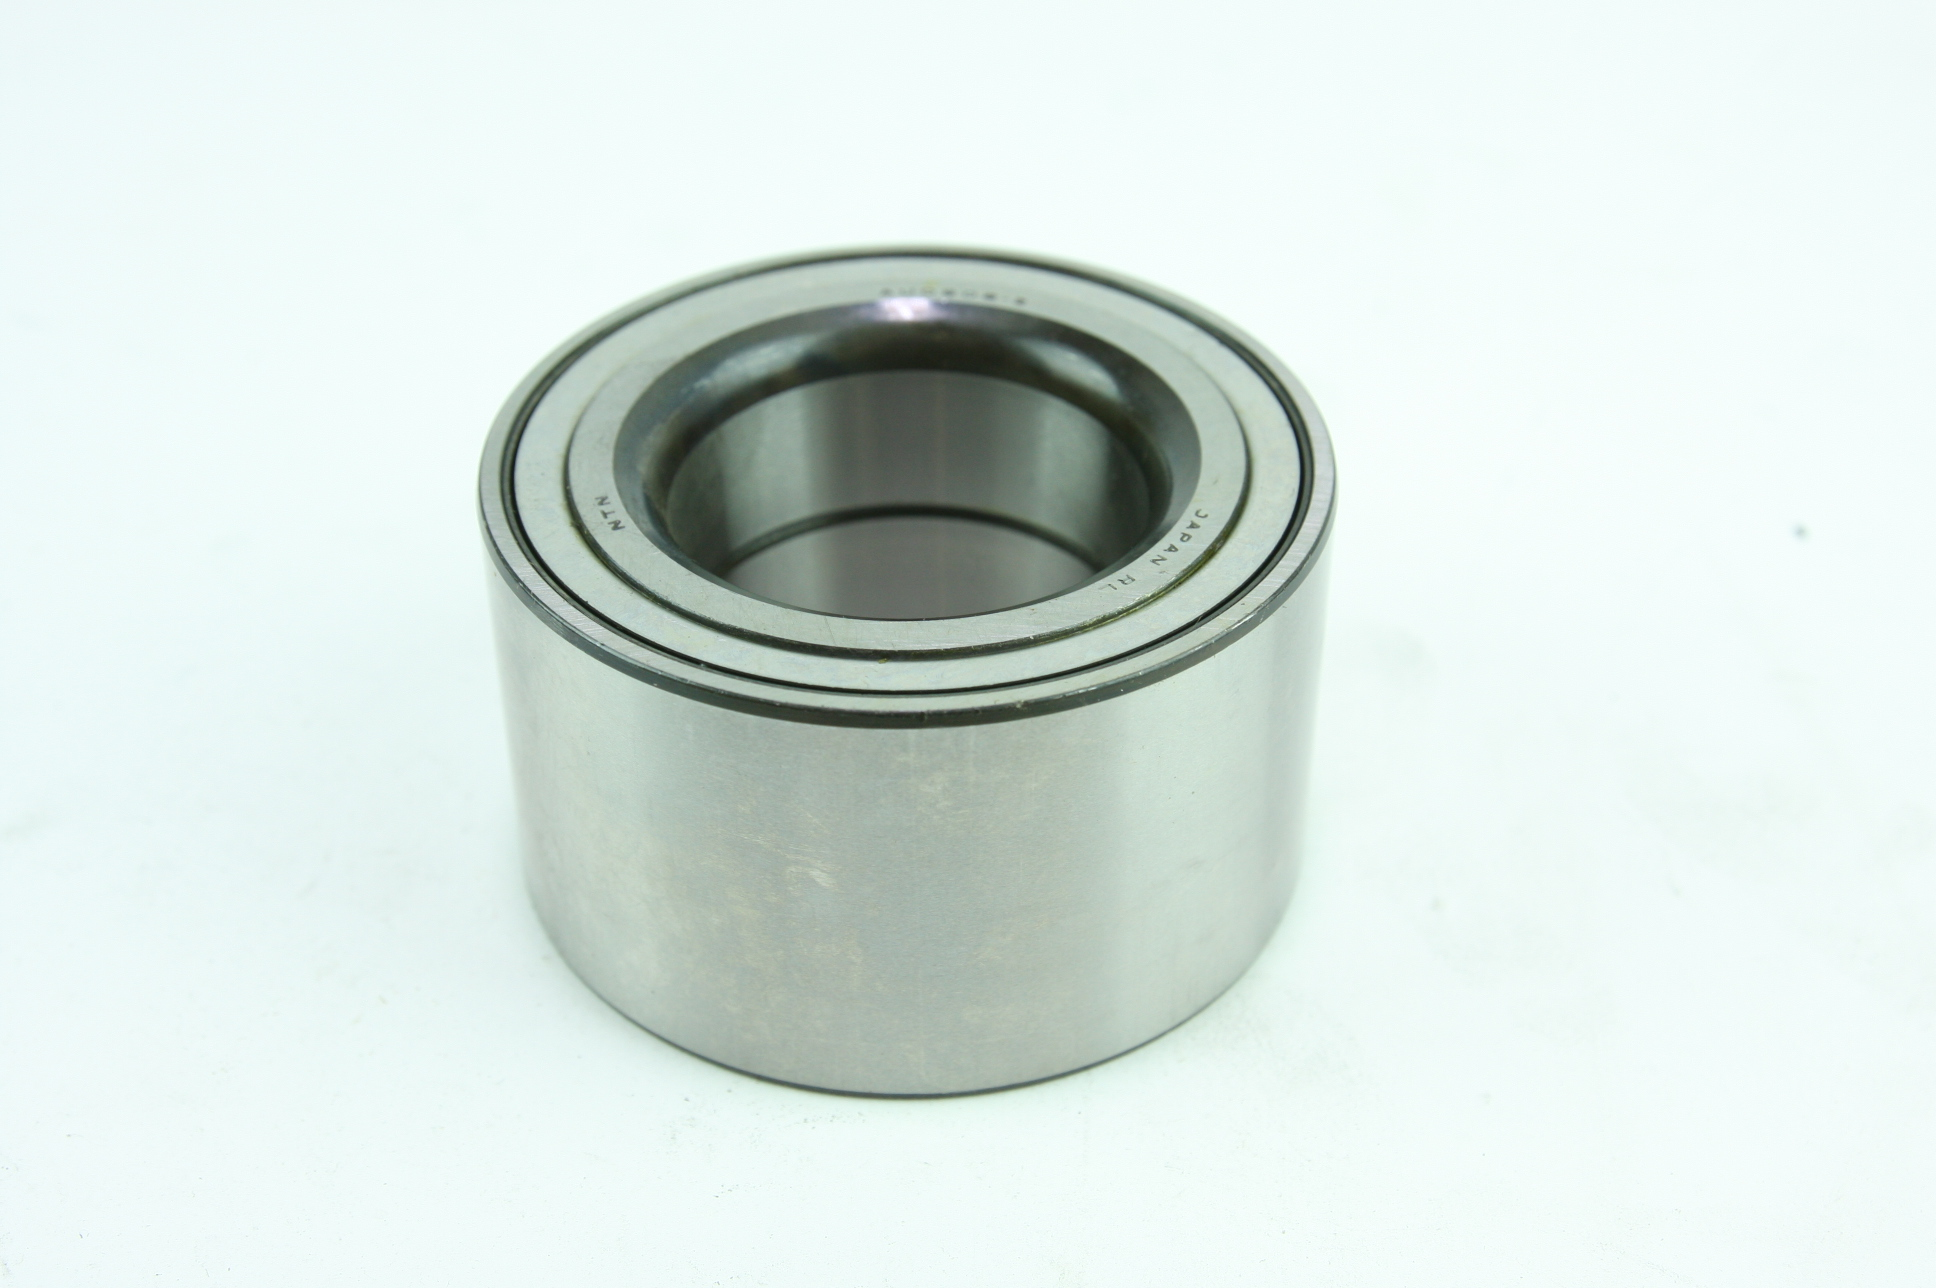 * New Genuine OEM Nissan 402102Y000 Front Wheel Bearing Fast Free Shipping - image 1